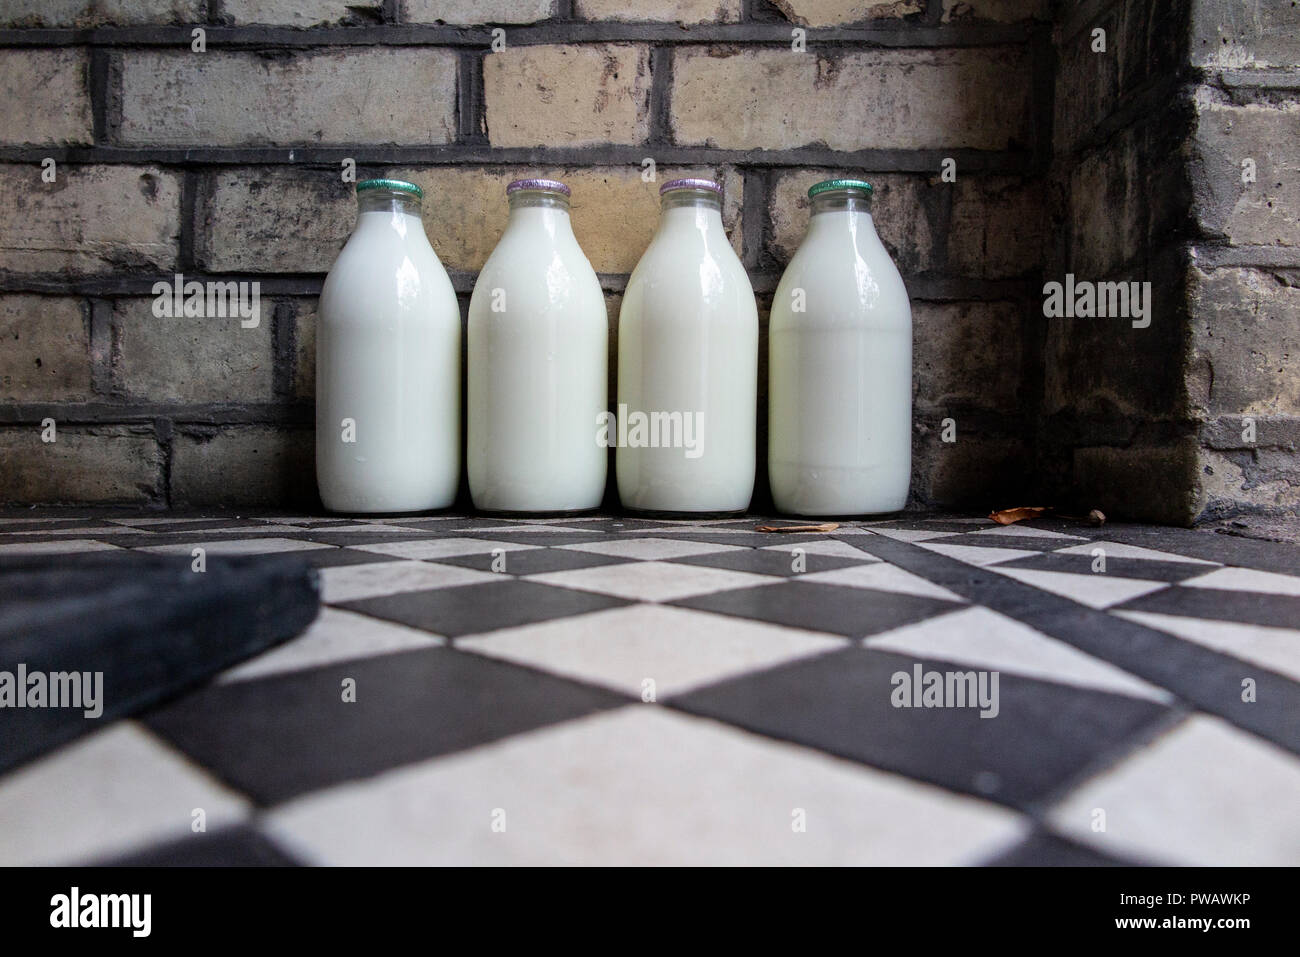 Four milk bottles on a doorstep of a terraced house in London - Stock Image